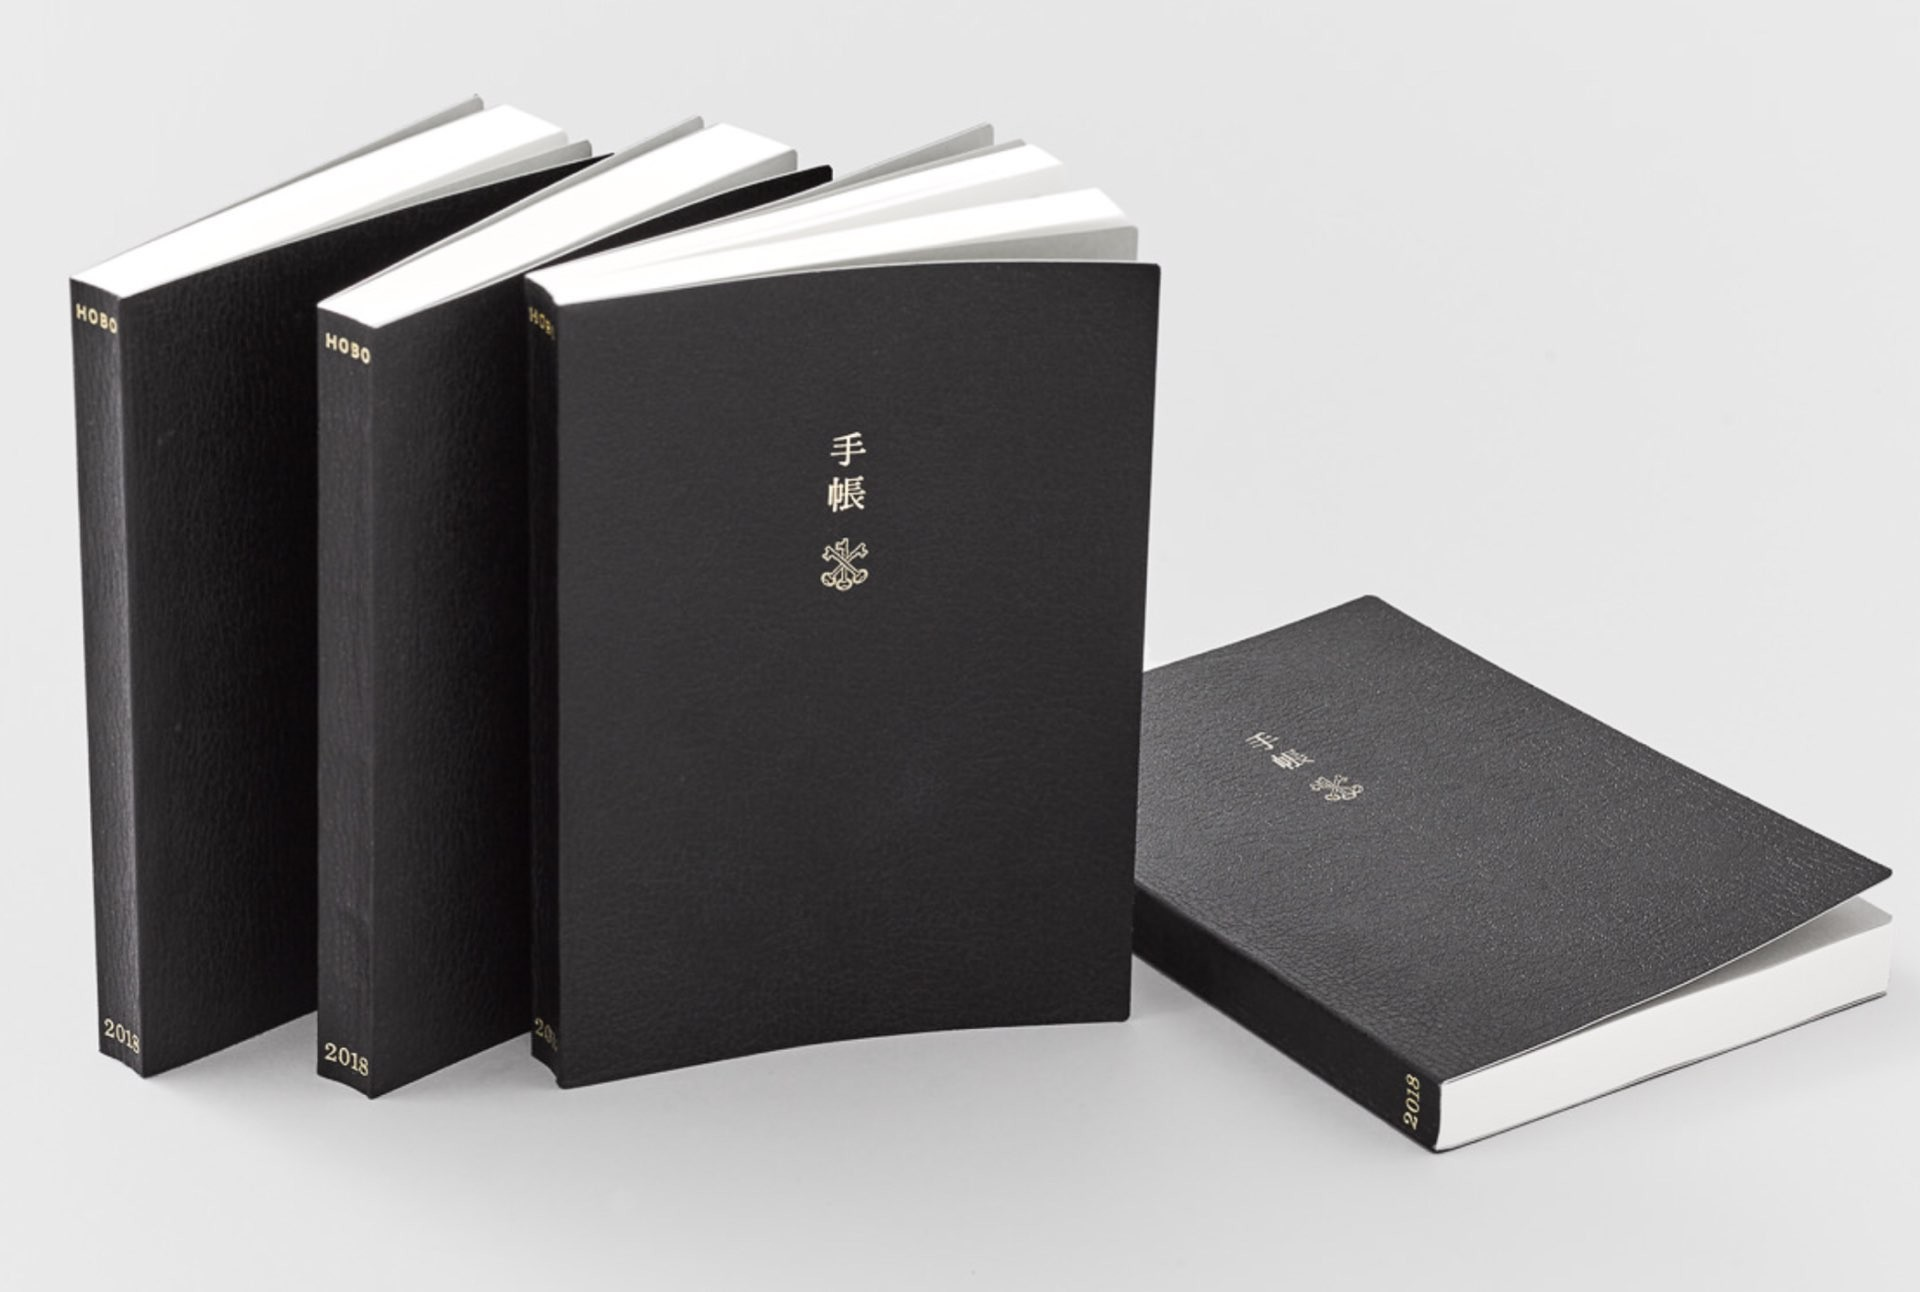 The Hobonichi Techo planner book. ($25 USD + intl. shipping)